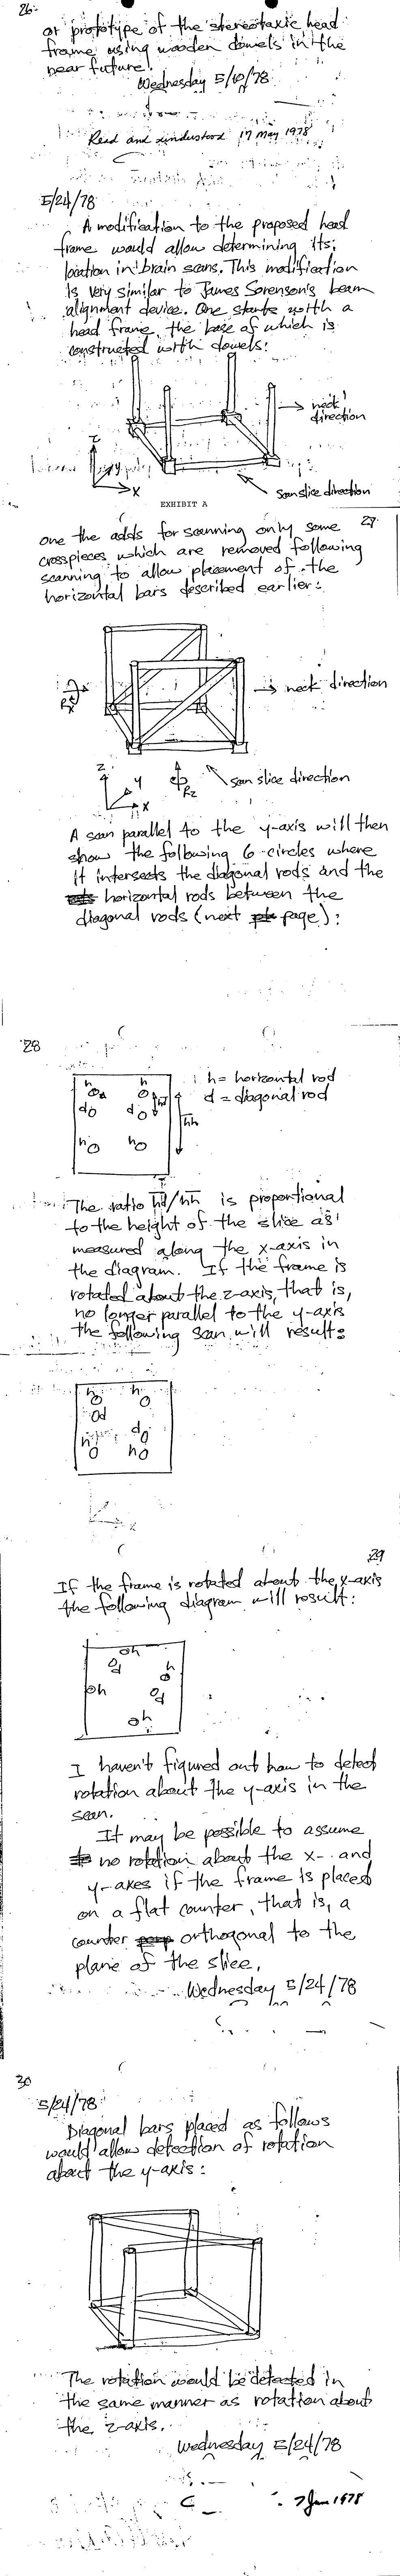 Appendix-2:-Russell-Brown-Notebook-1,-pp.-26-30,-May-24,-1978